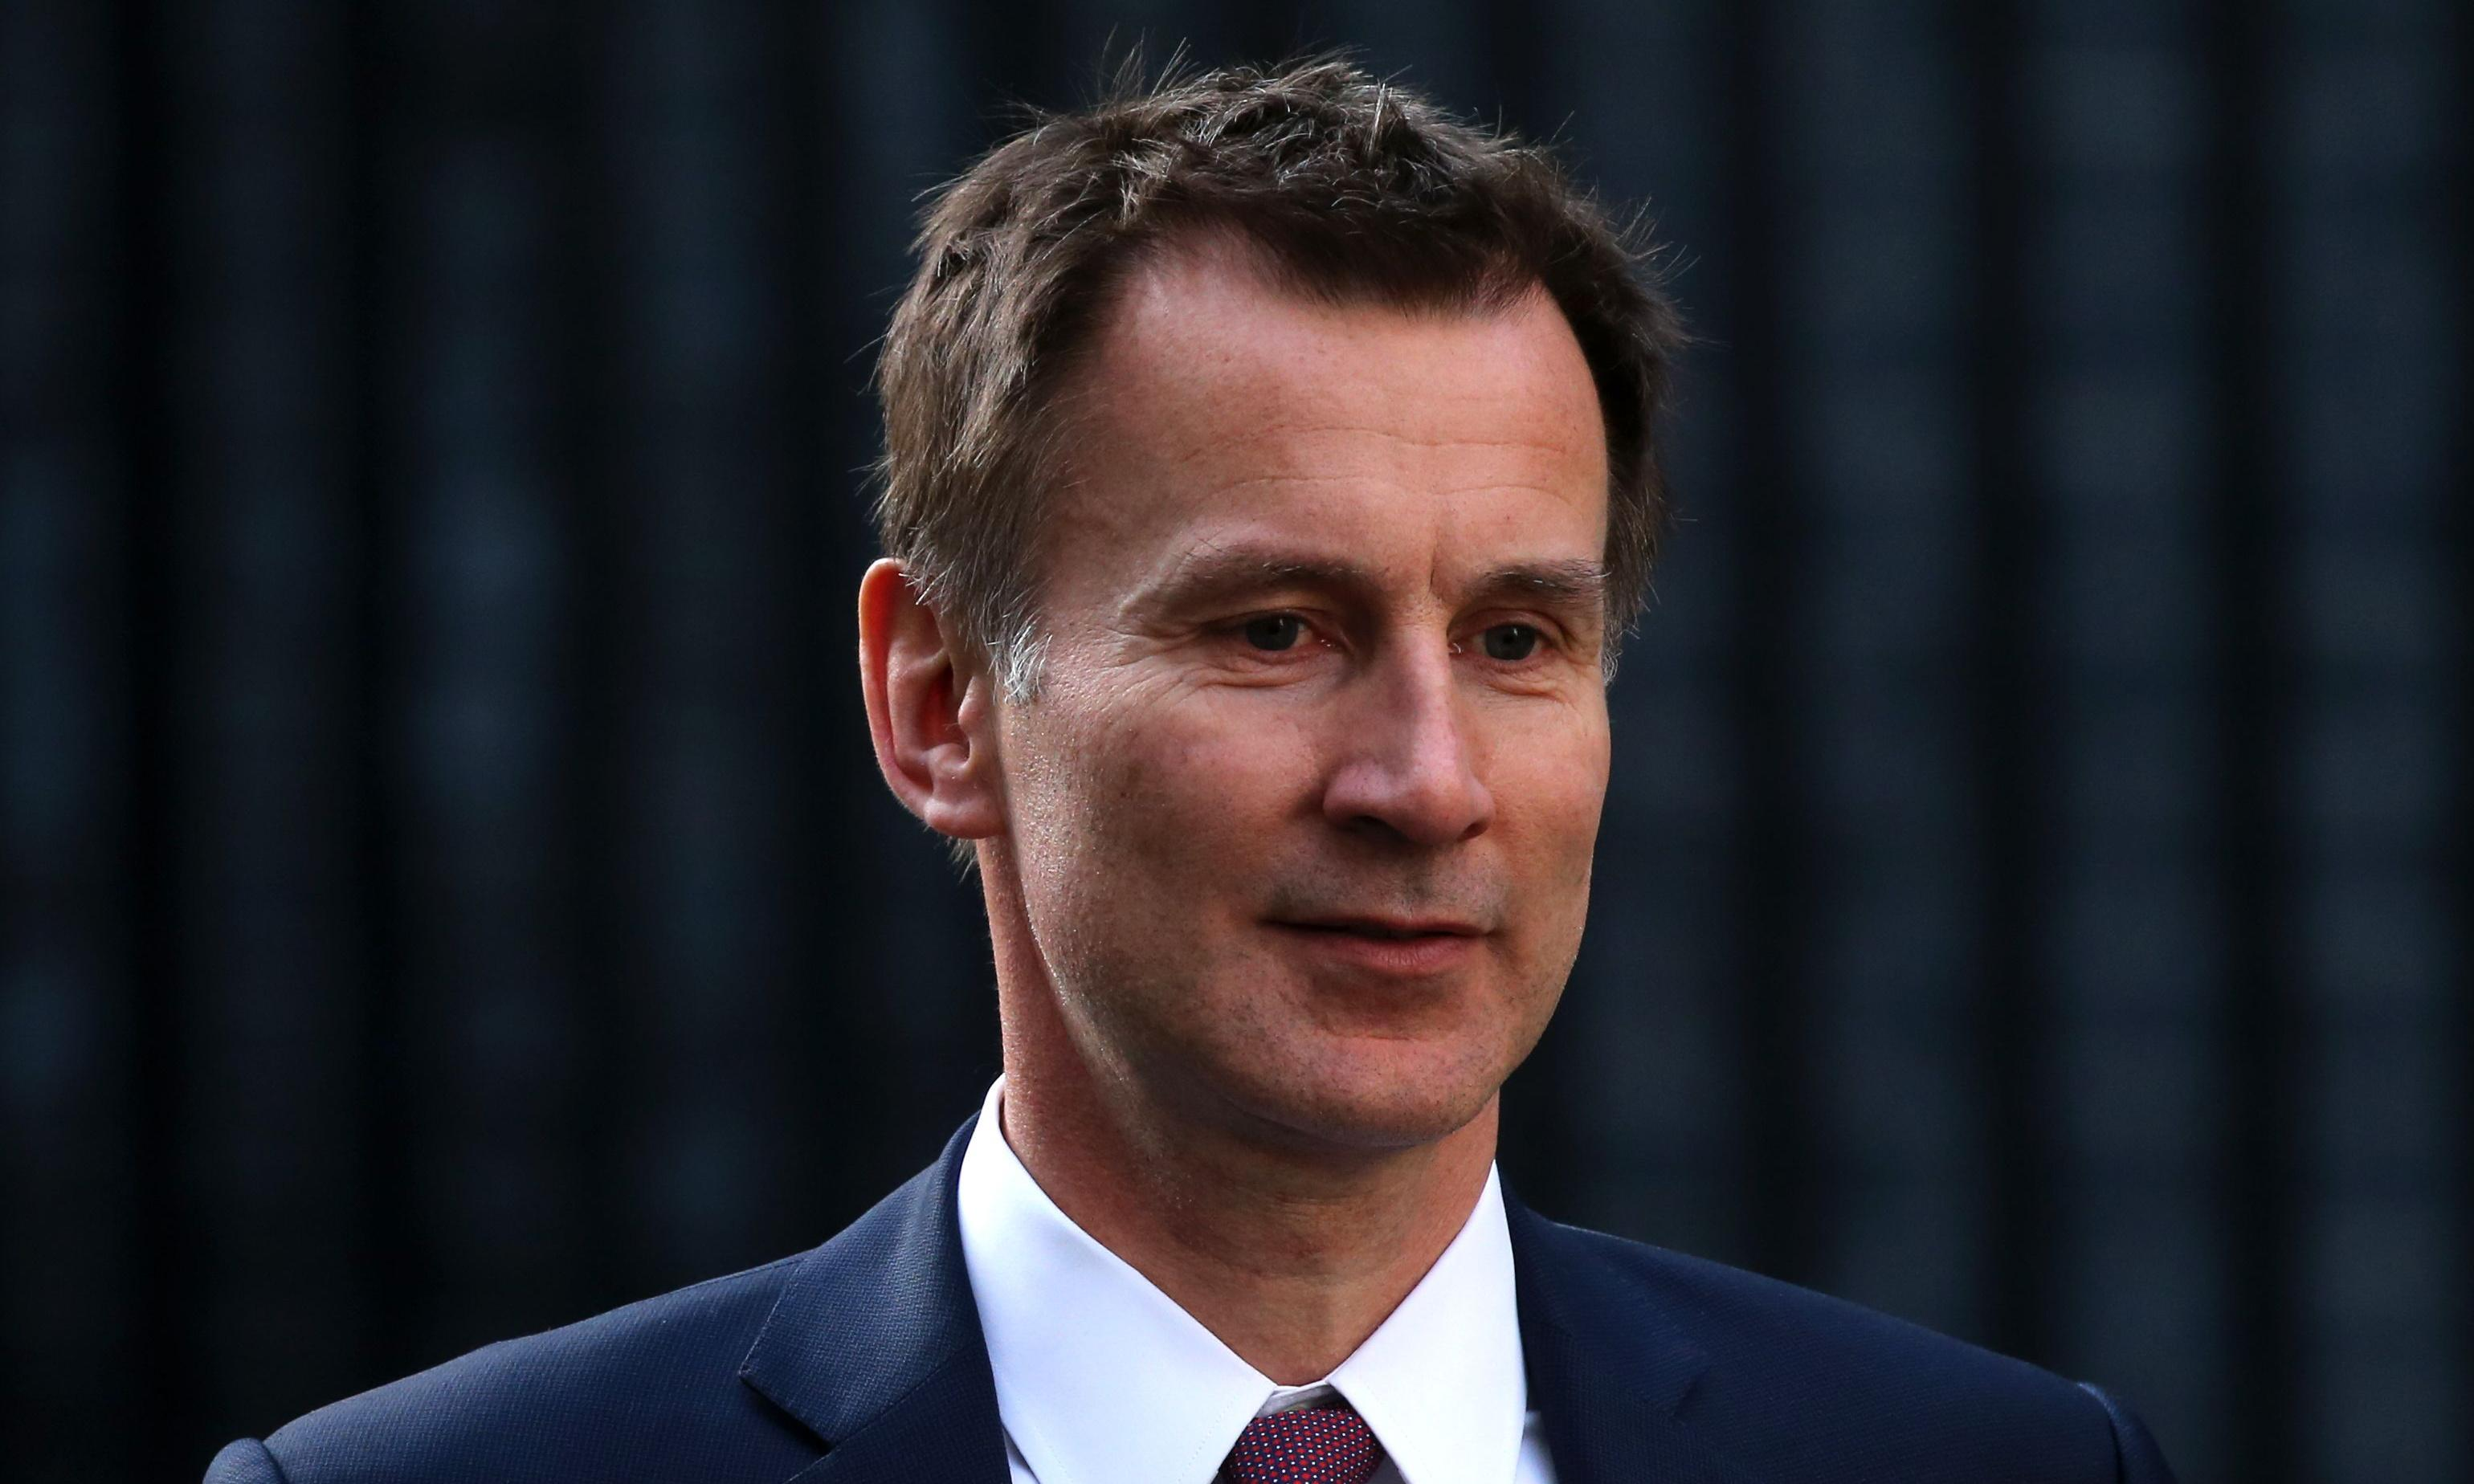 Jeremy Hunt raises plight of Christians in Easter message